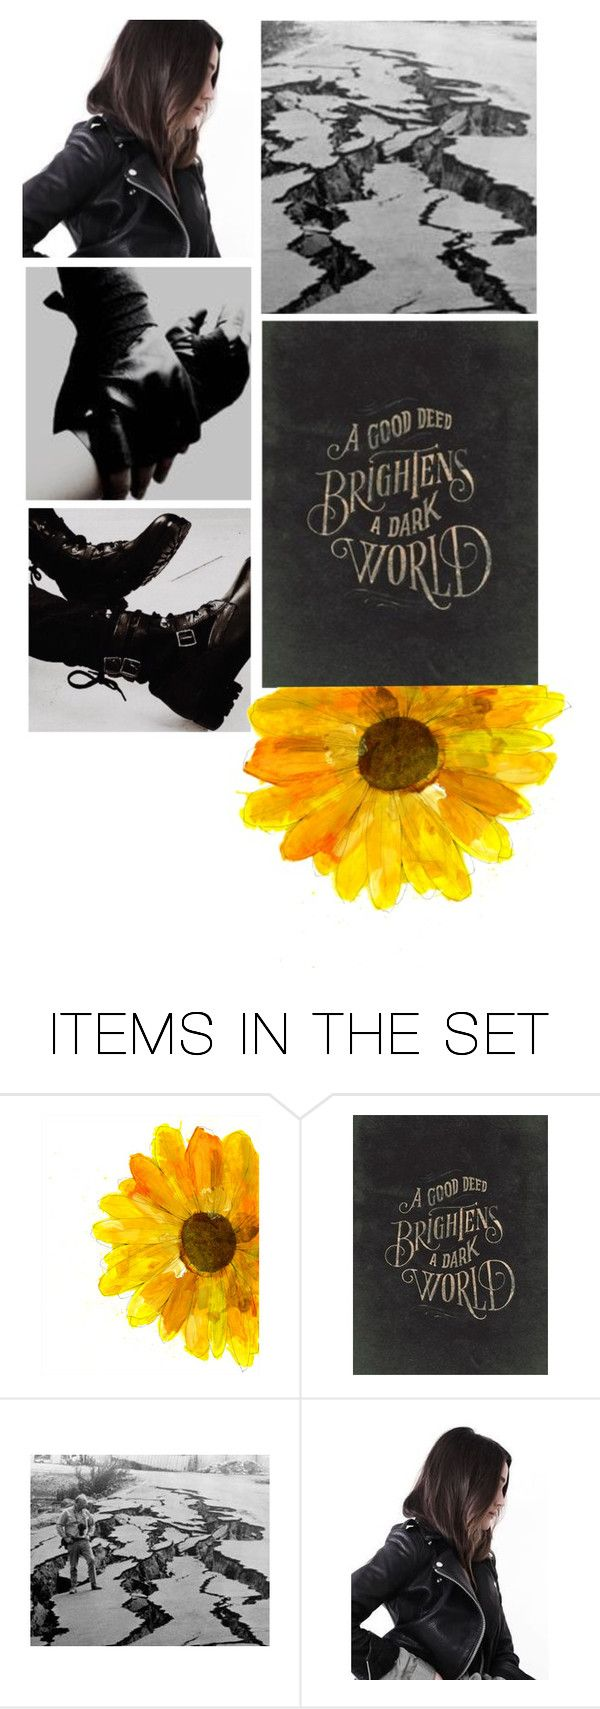 """Daisy Johnson"" by uniquely-sarah ❤ liked on Polyvore featuring art, marvel, AgentsofSHIELD and daisyjohnson"